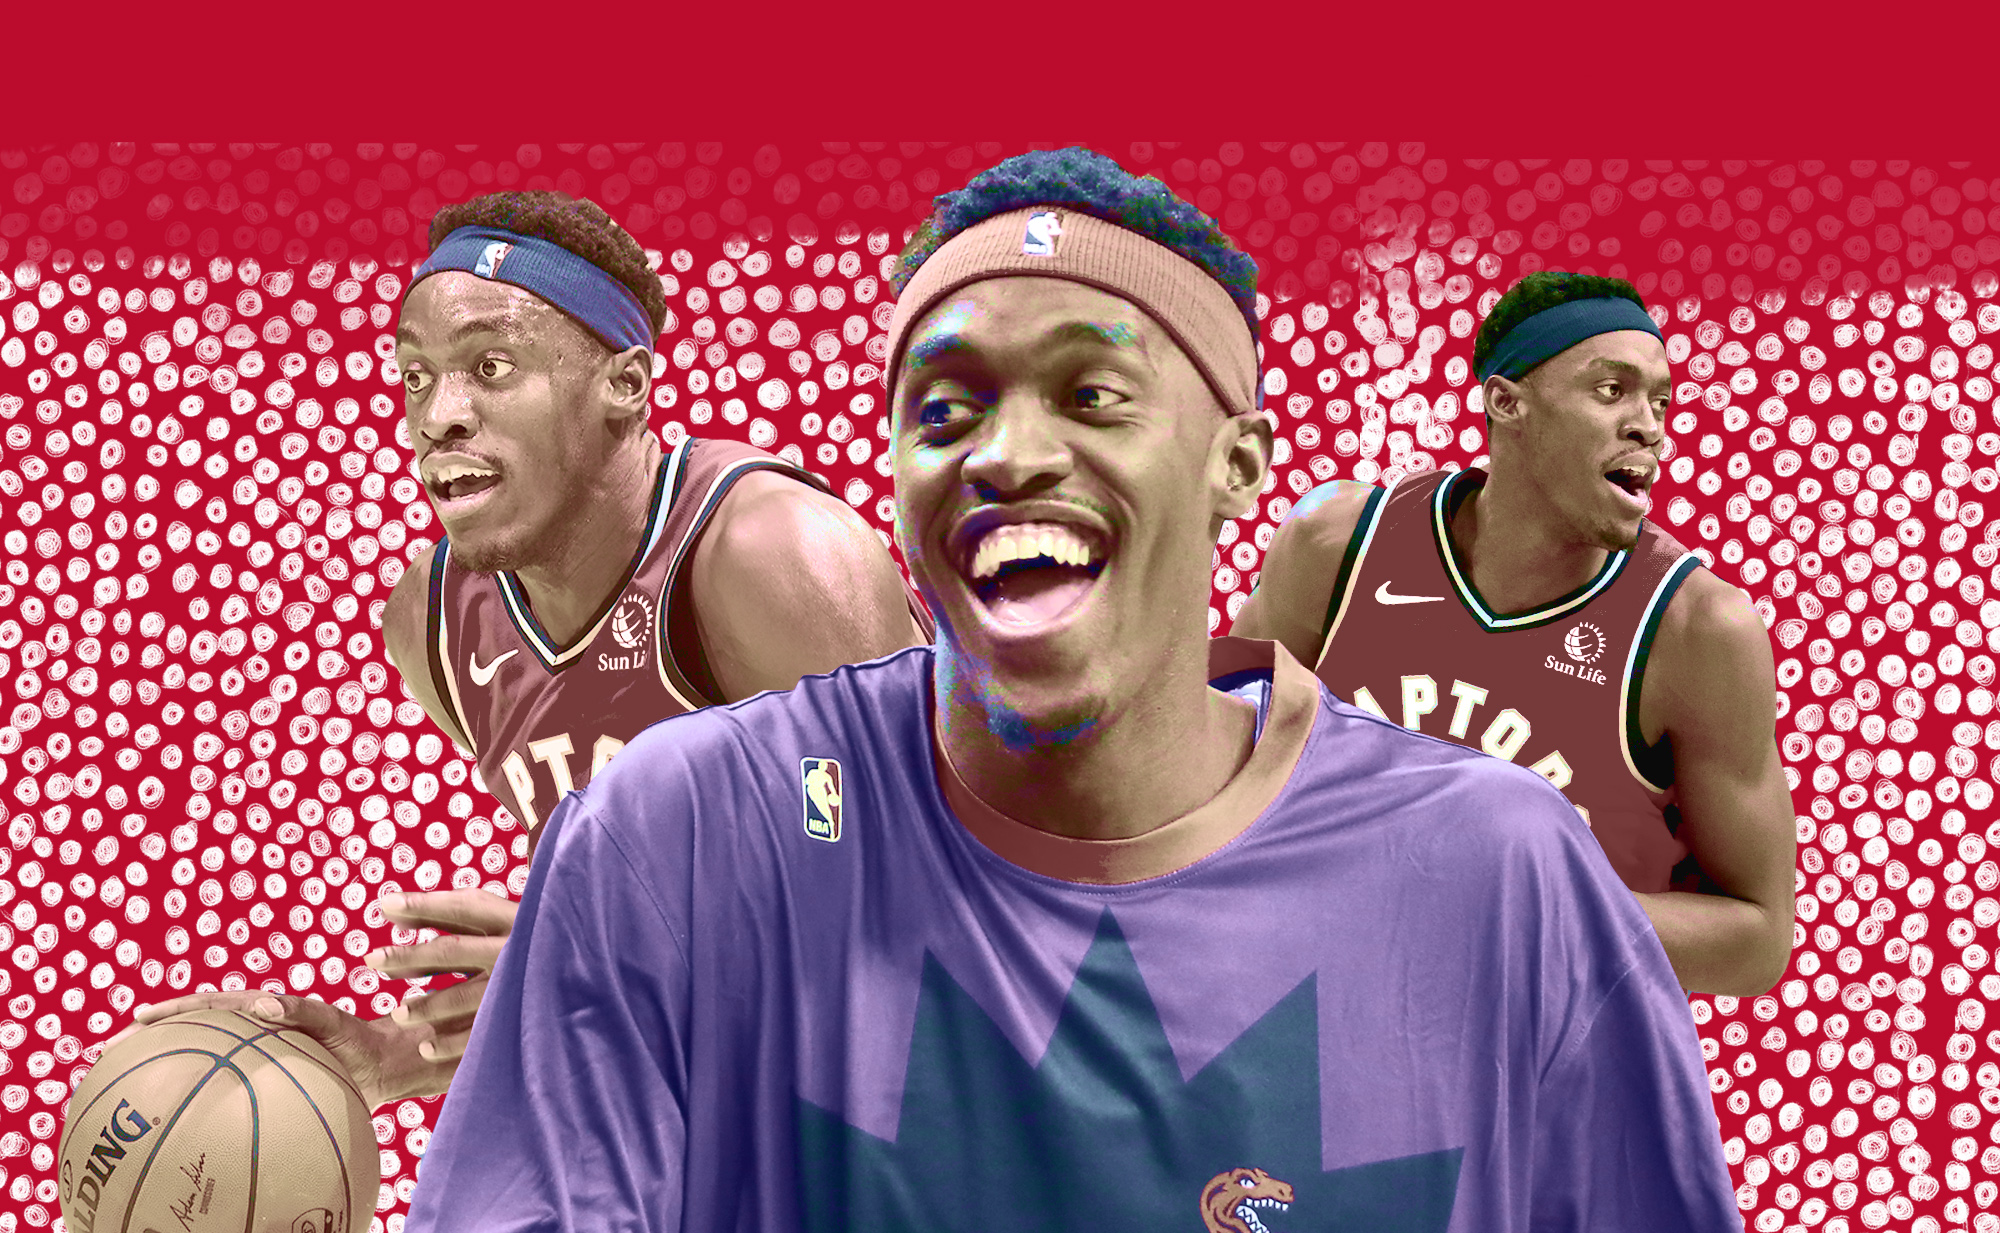 A collage of Pascal Siakam smiling and playing.